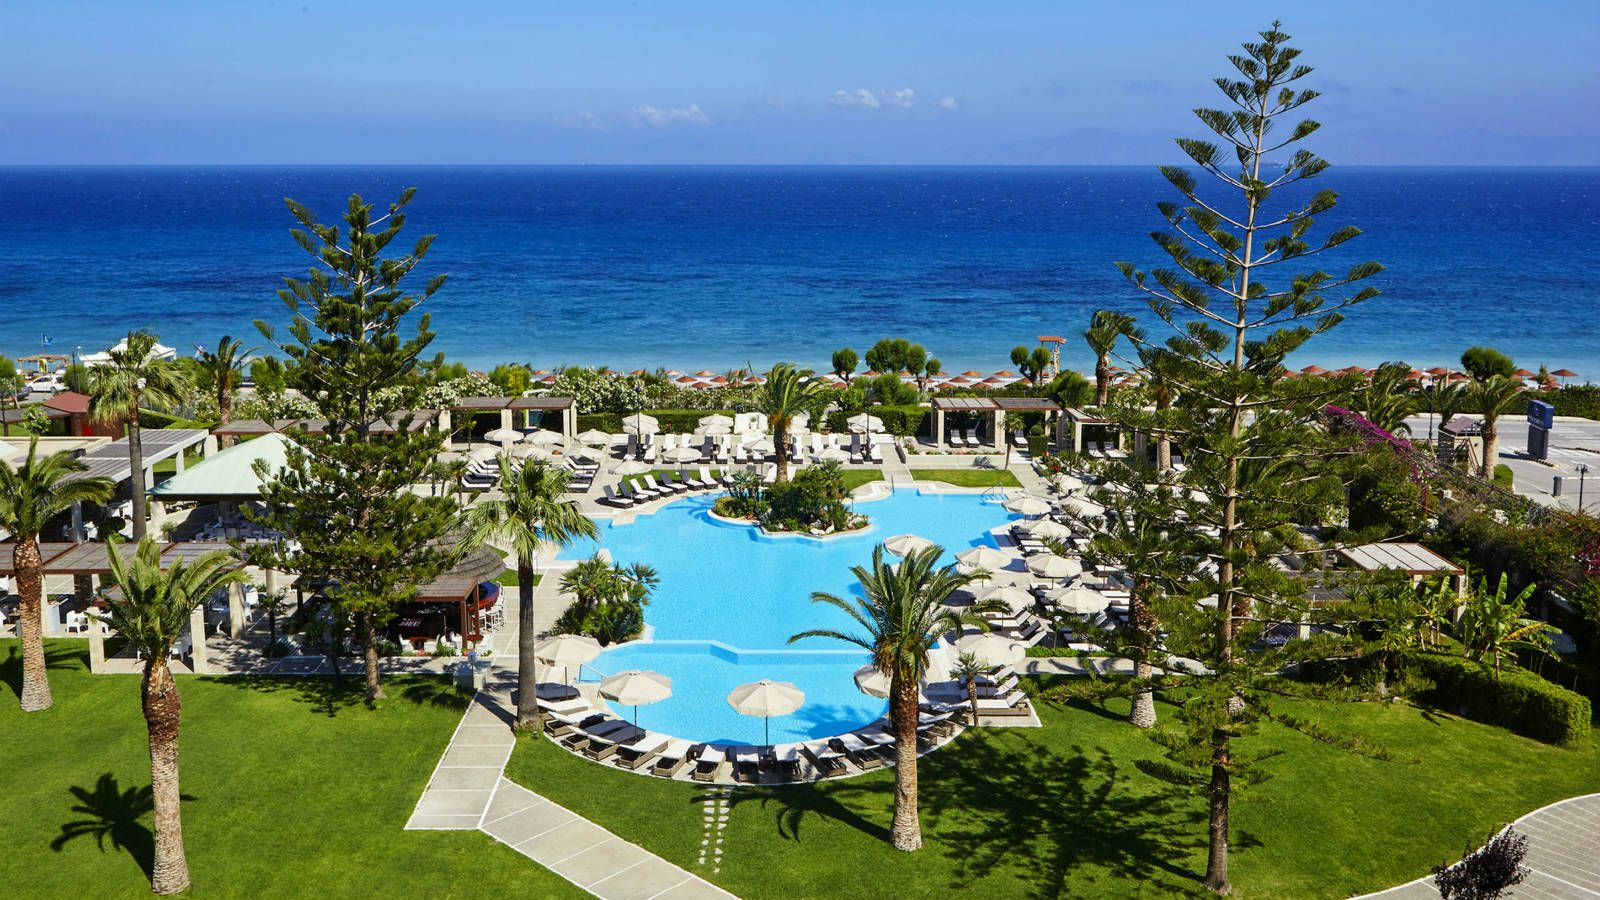 pool-and-beach-view-at-the-sheraton-rhodes-resort-journey-greece